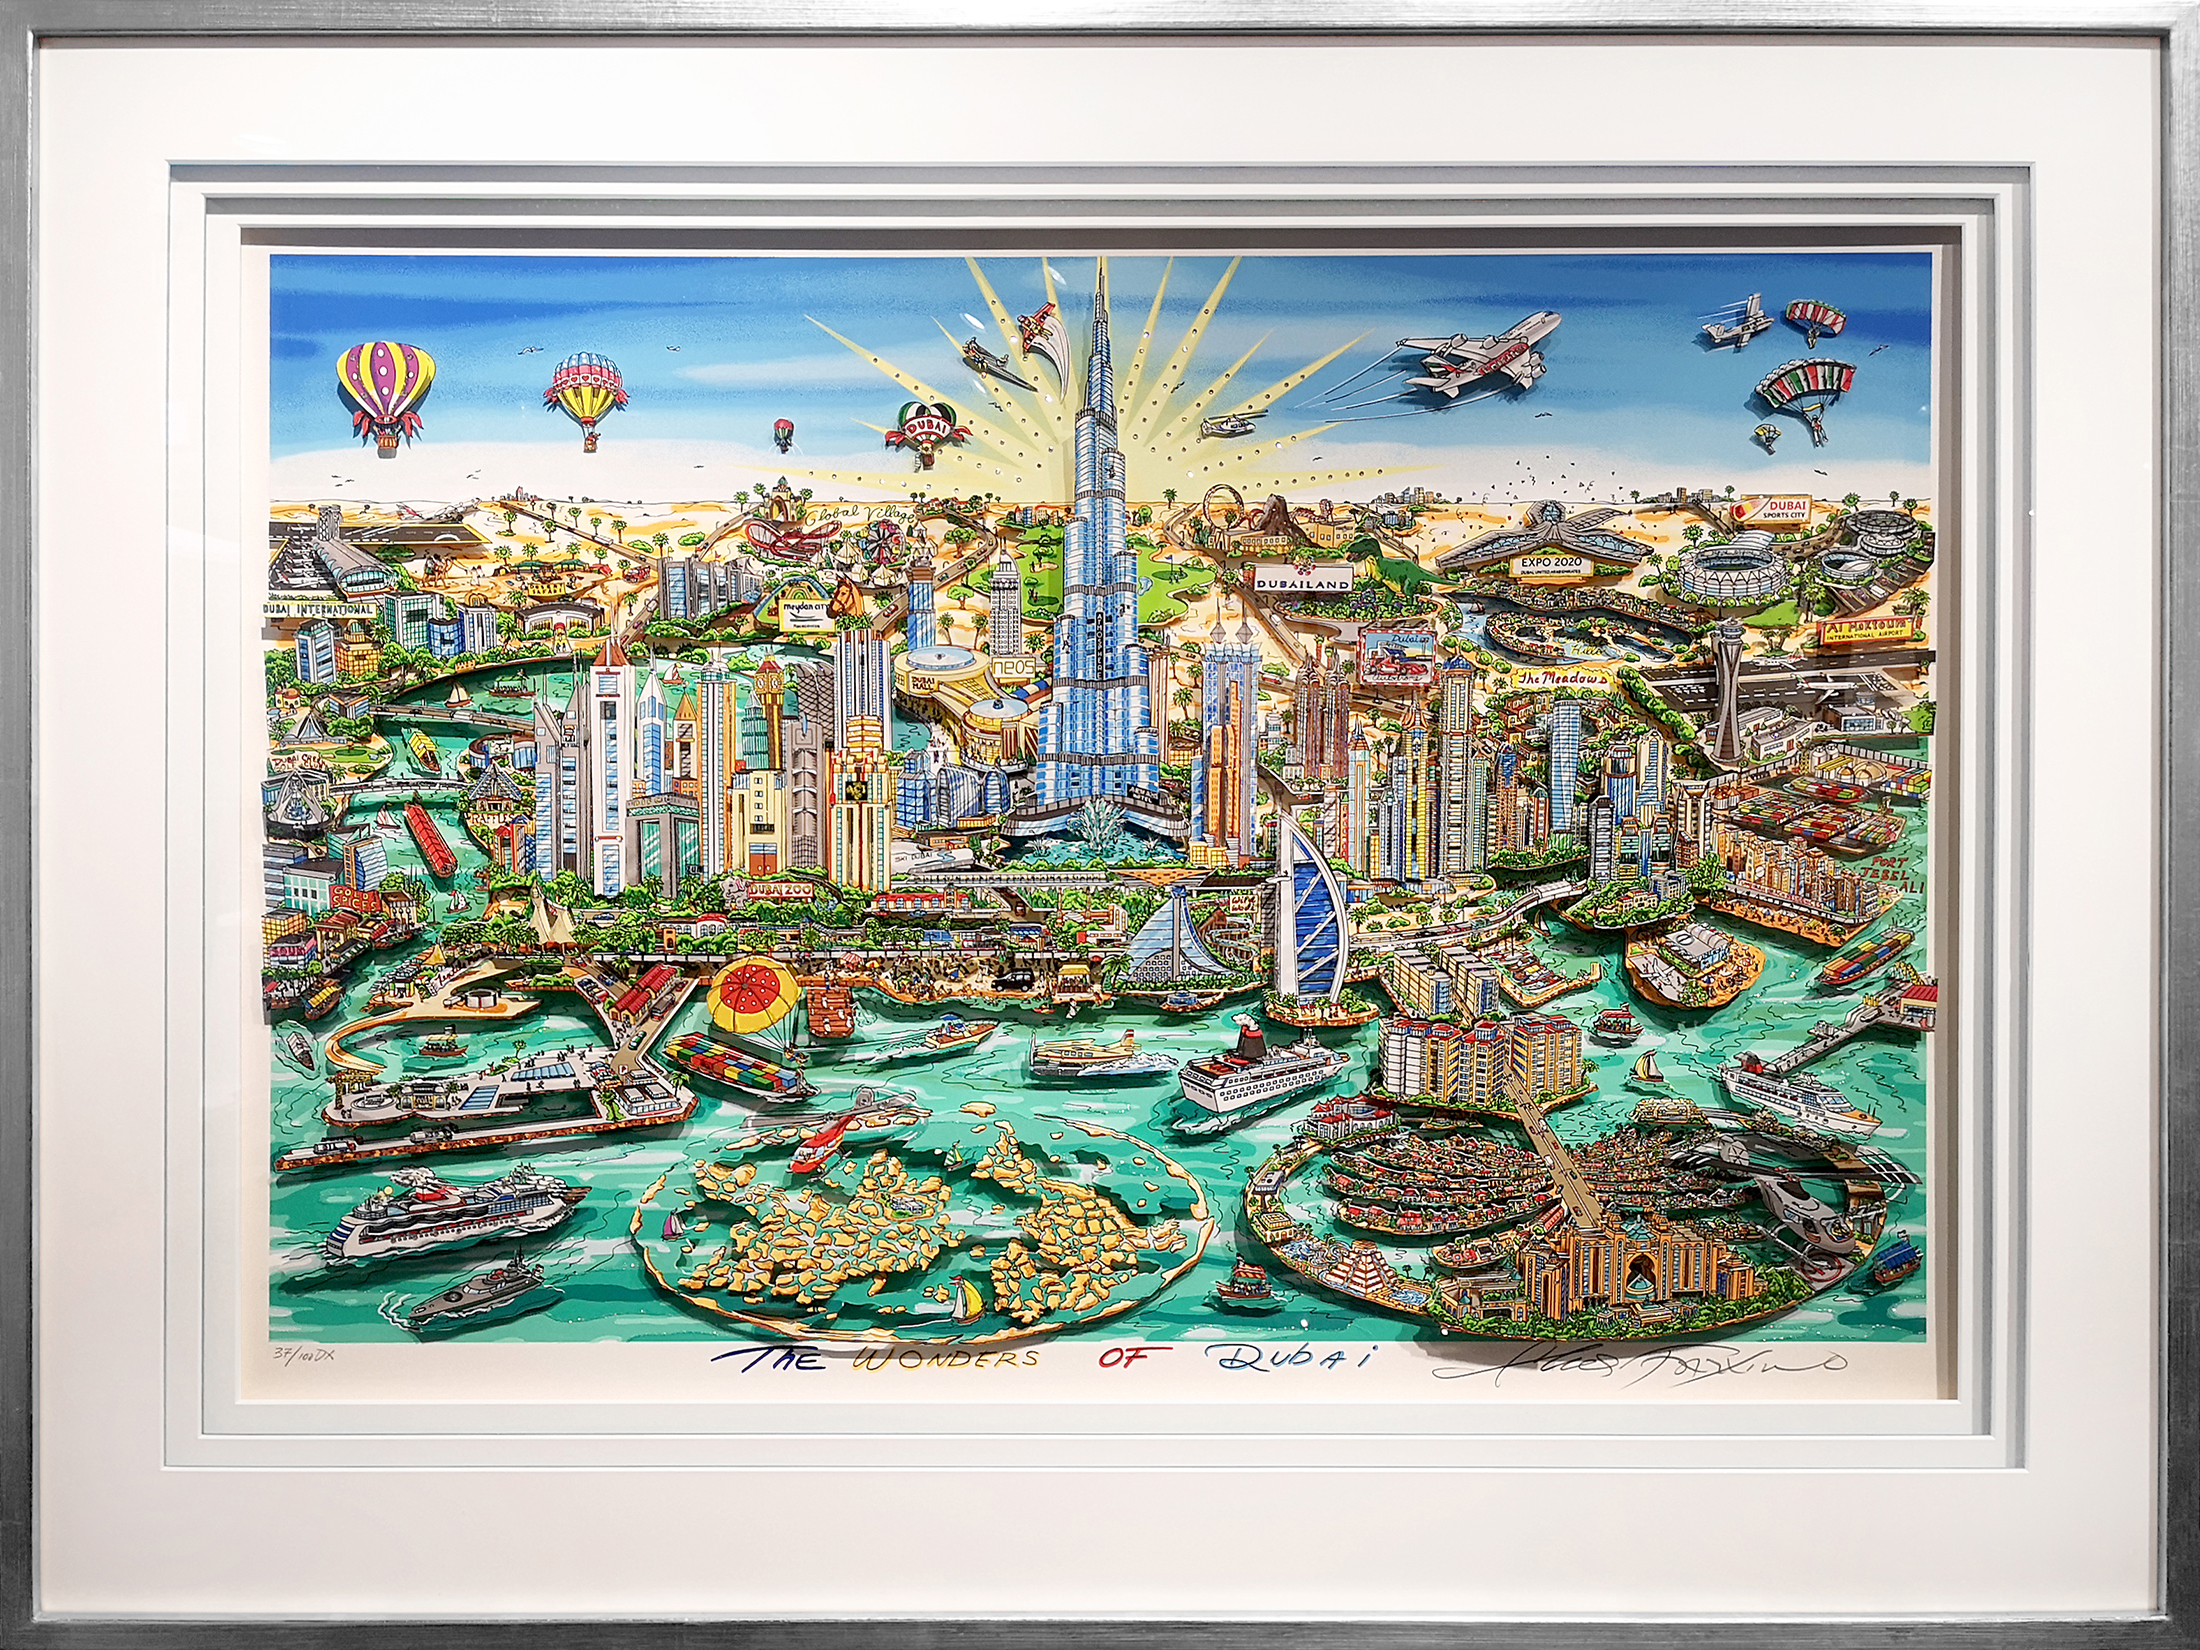 Charles Fazzino - The Wonders of Dubai , 5552-008-839-943-961